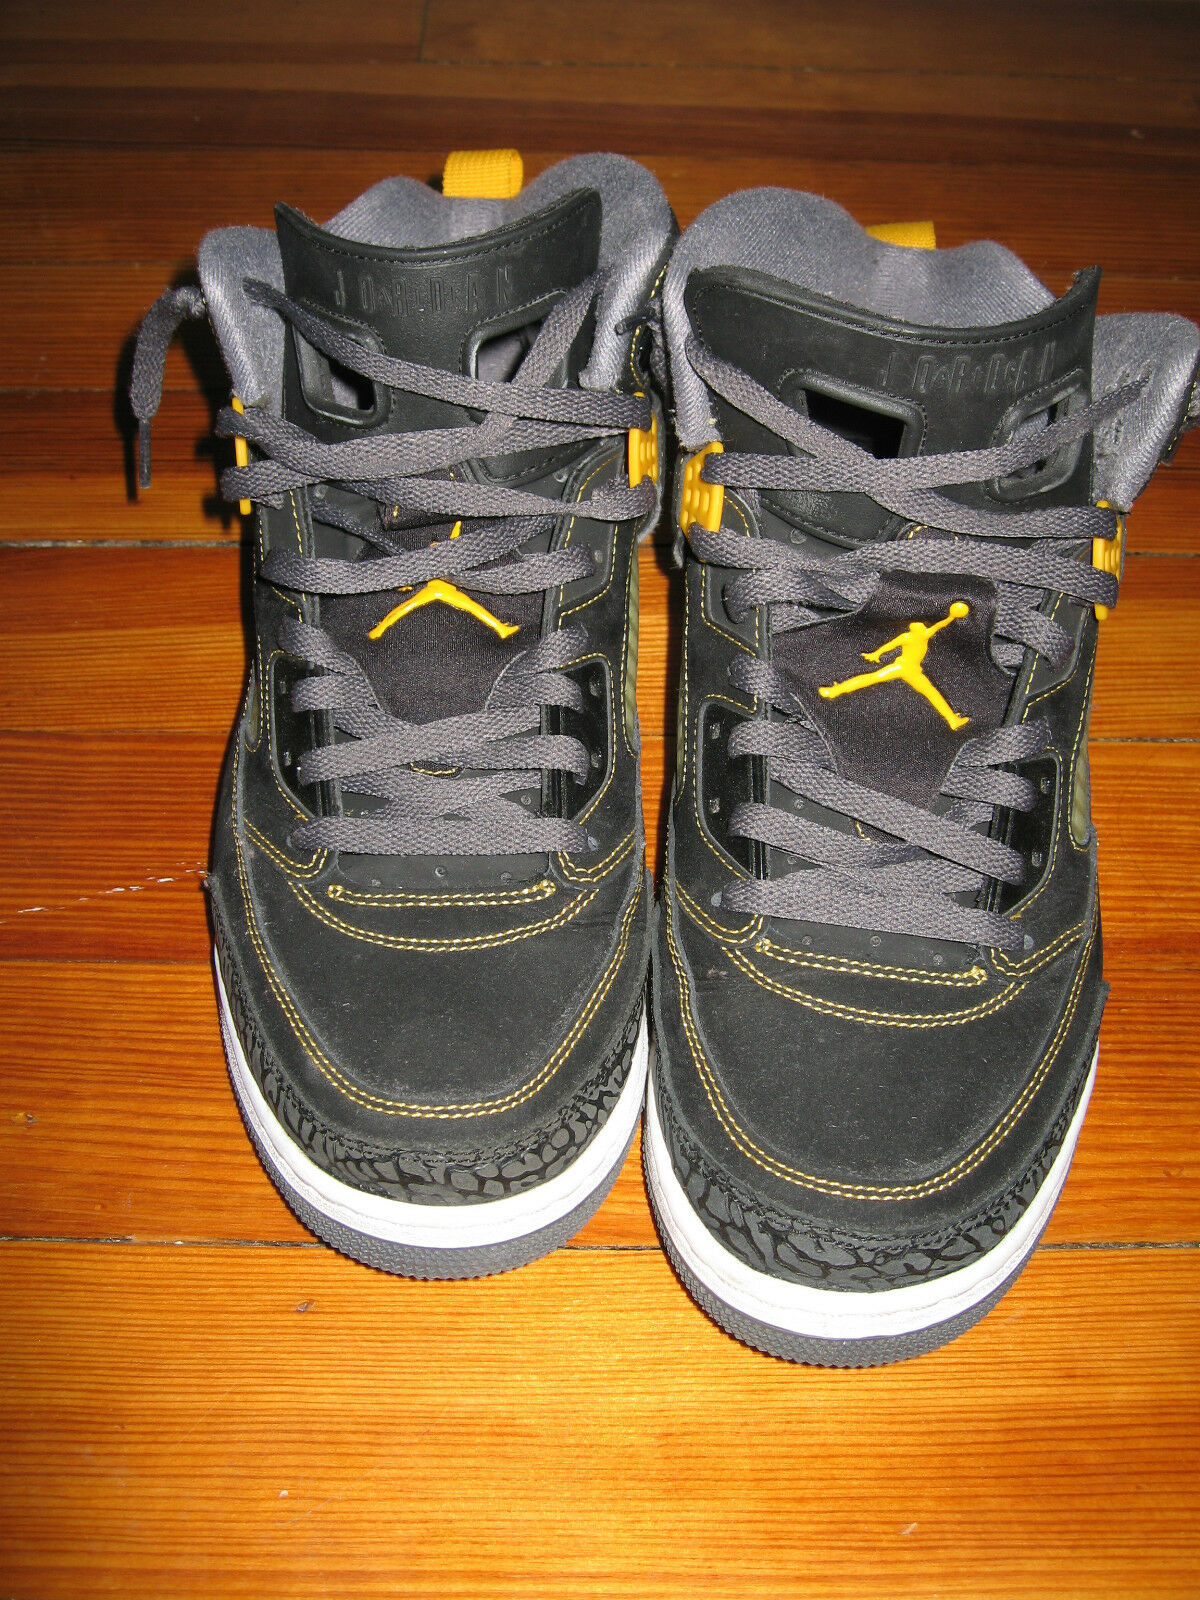 Pre-owned Air Jordan Spizikes Black Yellow Basketball Shoes Comfortable Seasonal clearance sale